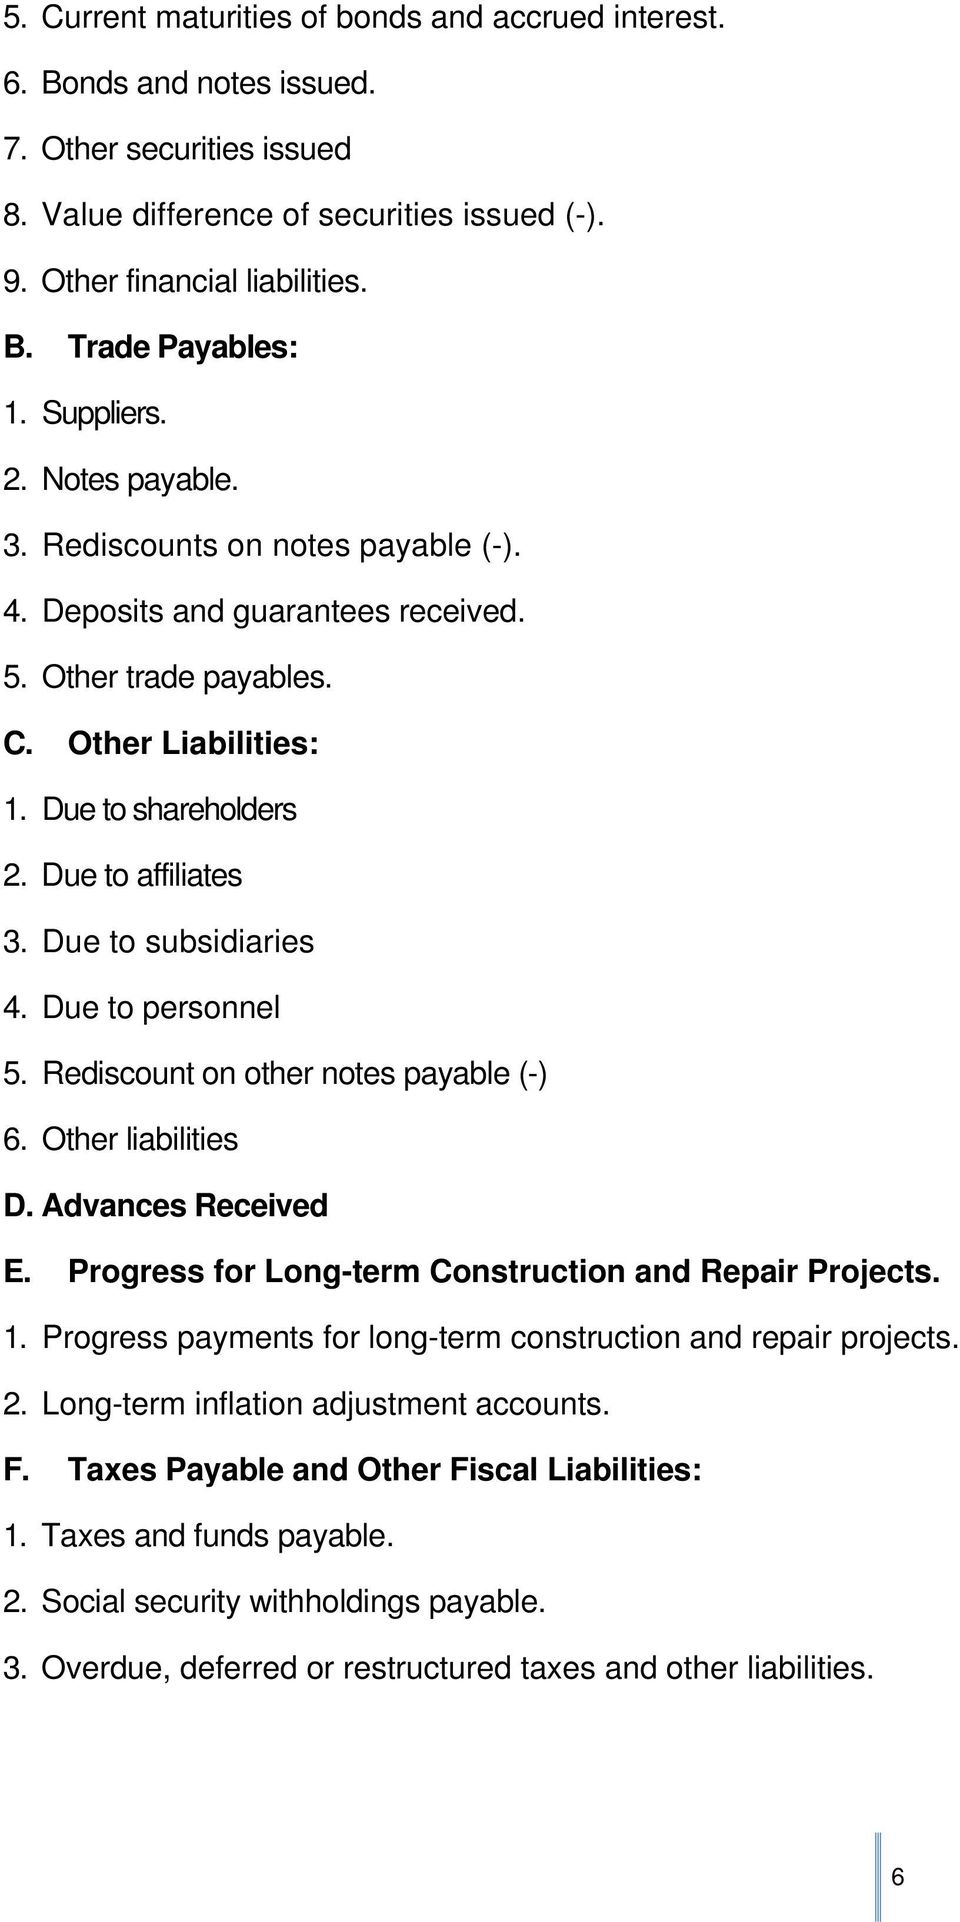 Due to subsidiaries 4. Due to personnel 5. Rediscount on other notes payable (-) 6. Other liabilities D. Advances Received E. Progress for Long-term Construction and Repair Projects. 1.